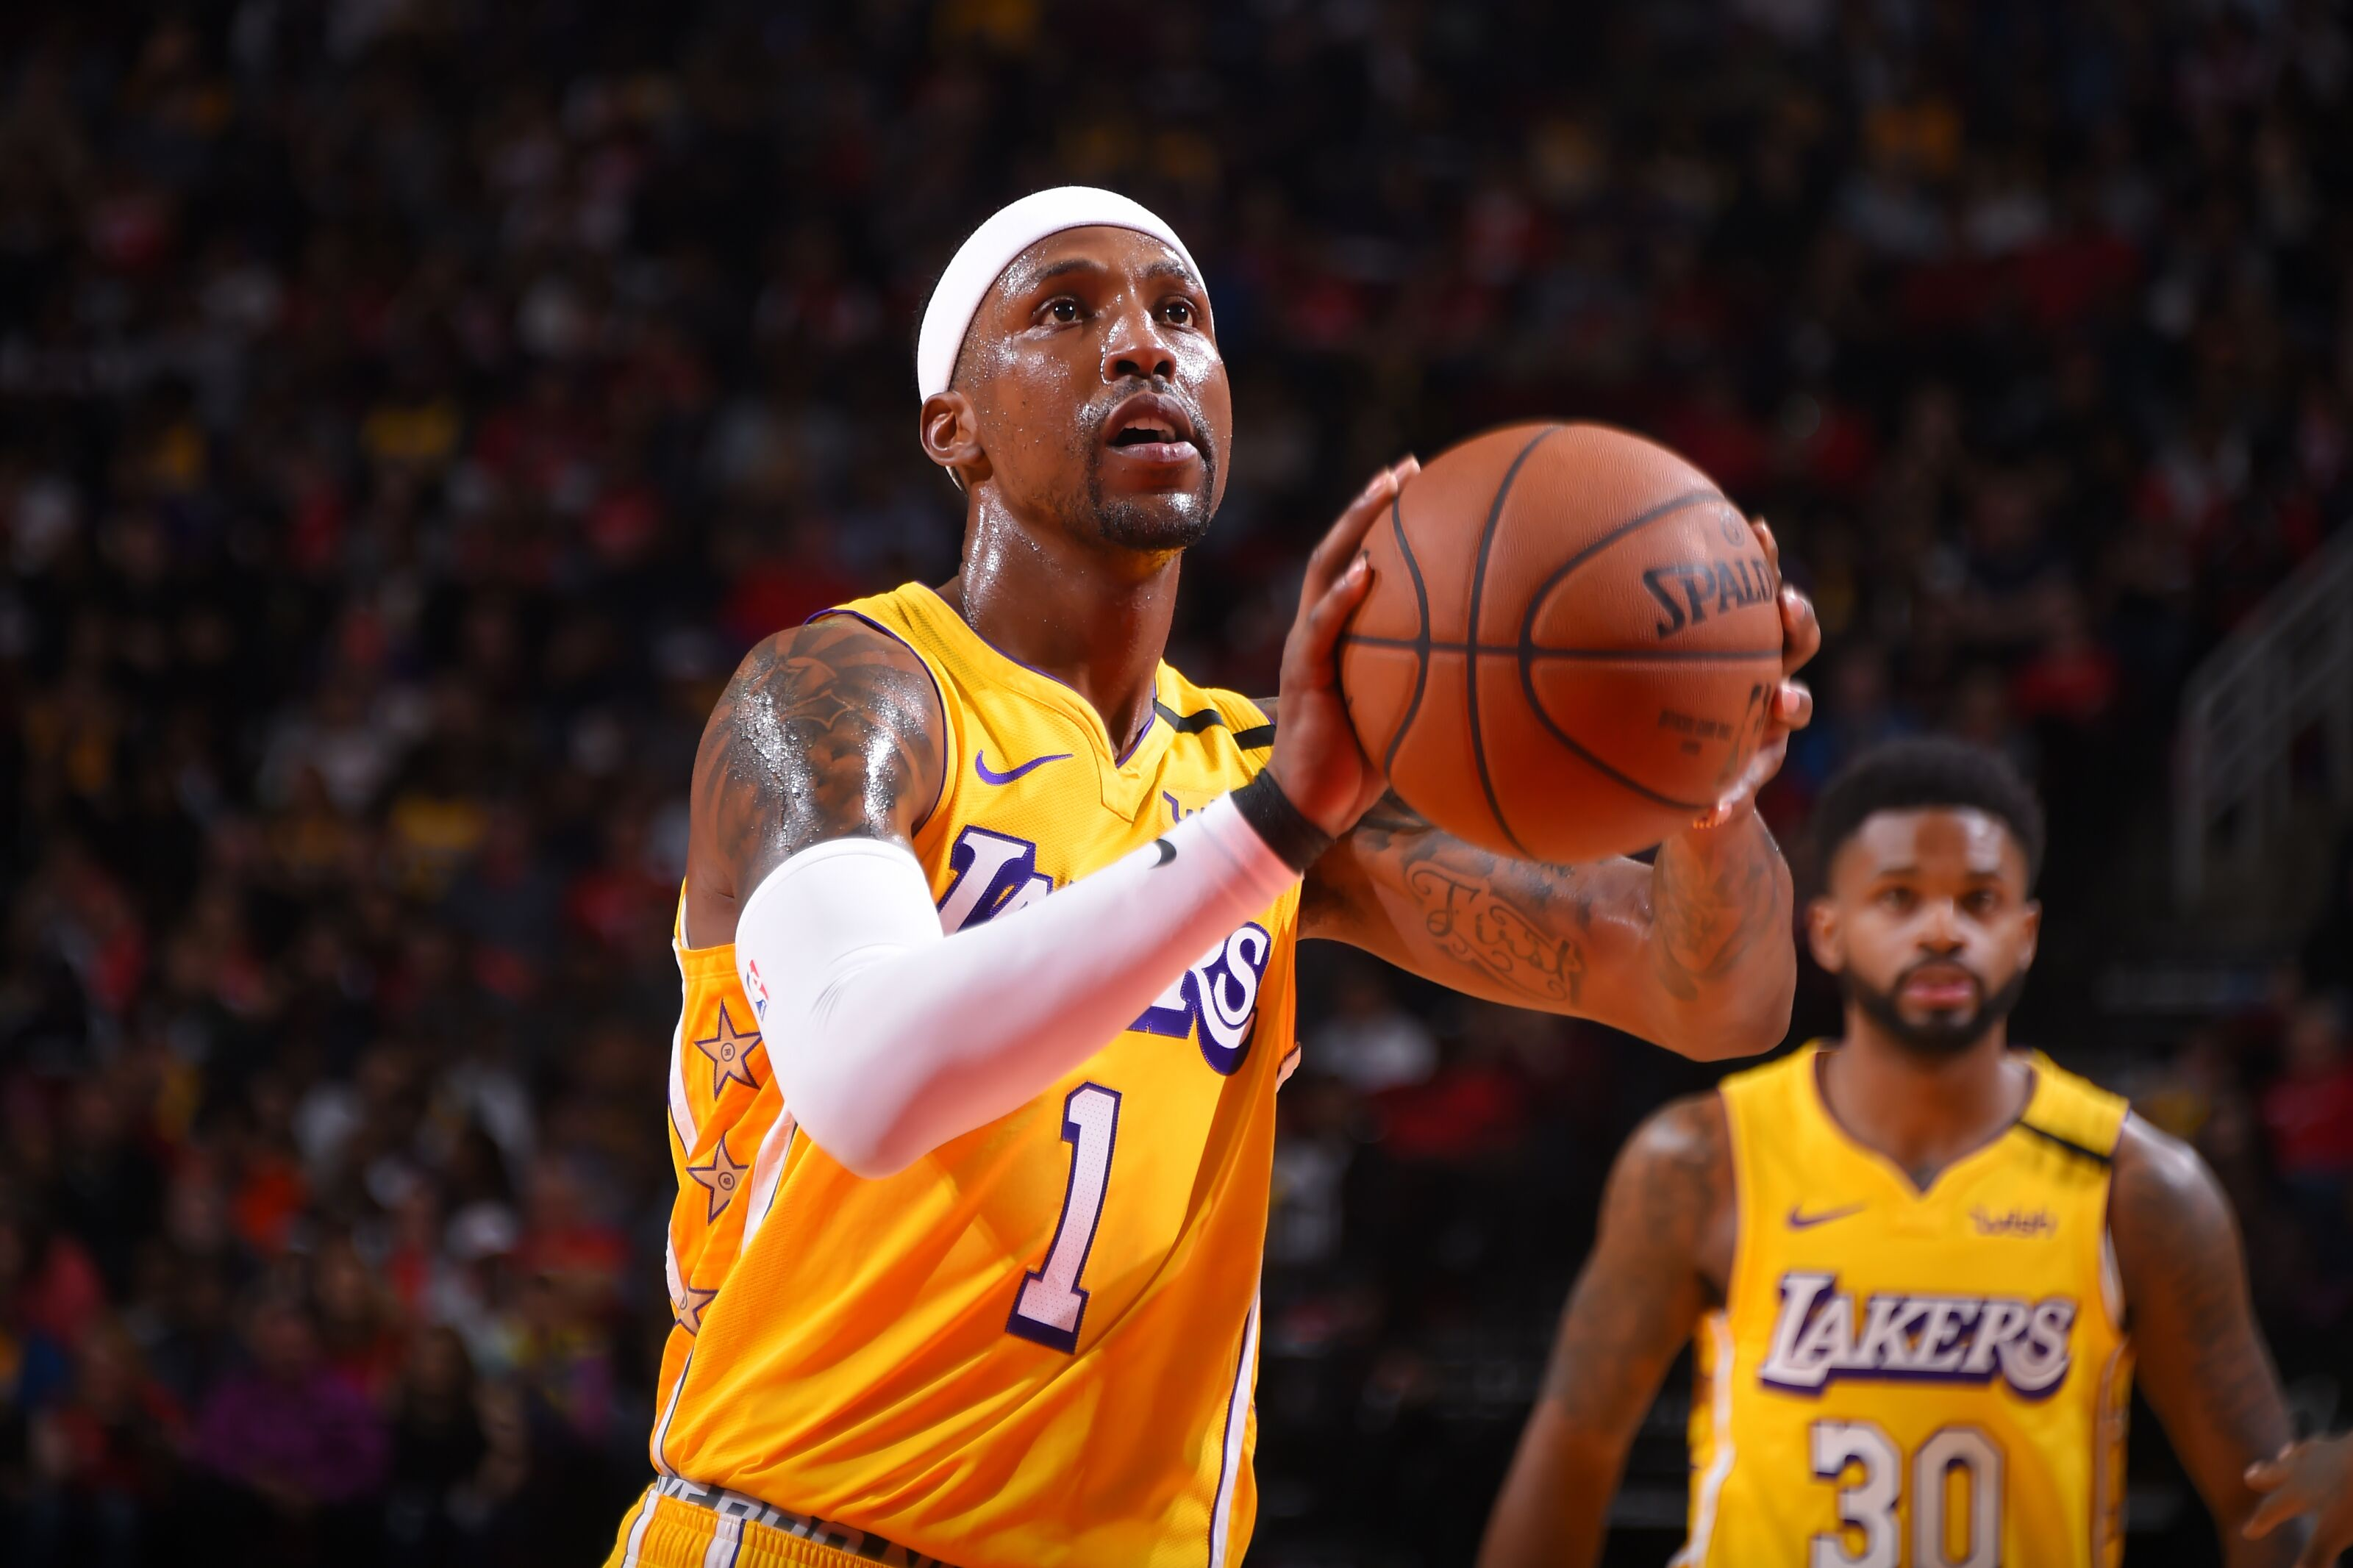 Los Angeles Lakers: Kentavious Caldwell-Pope plays a huge role against Rockets